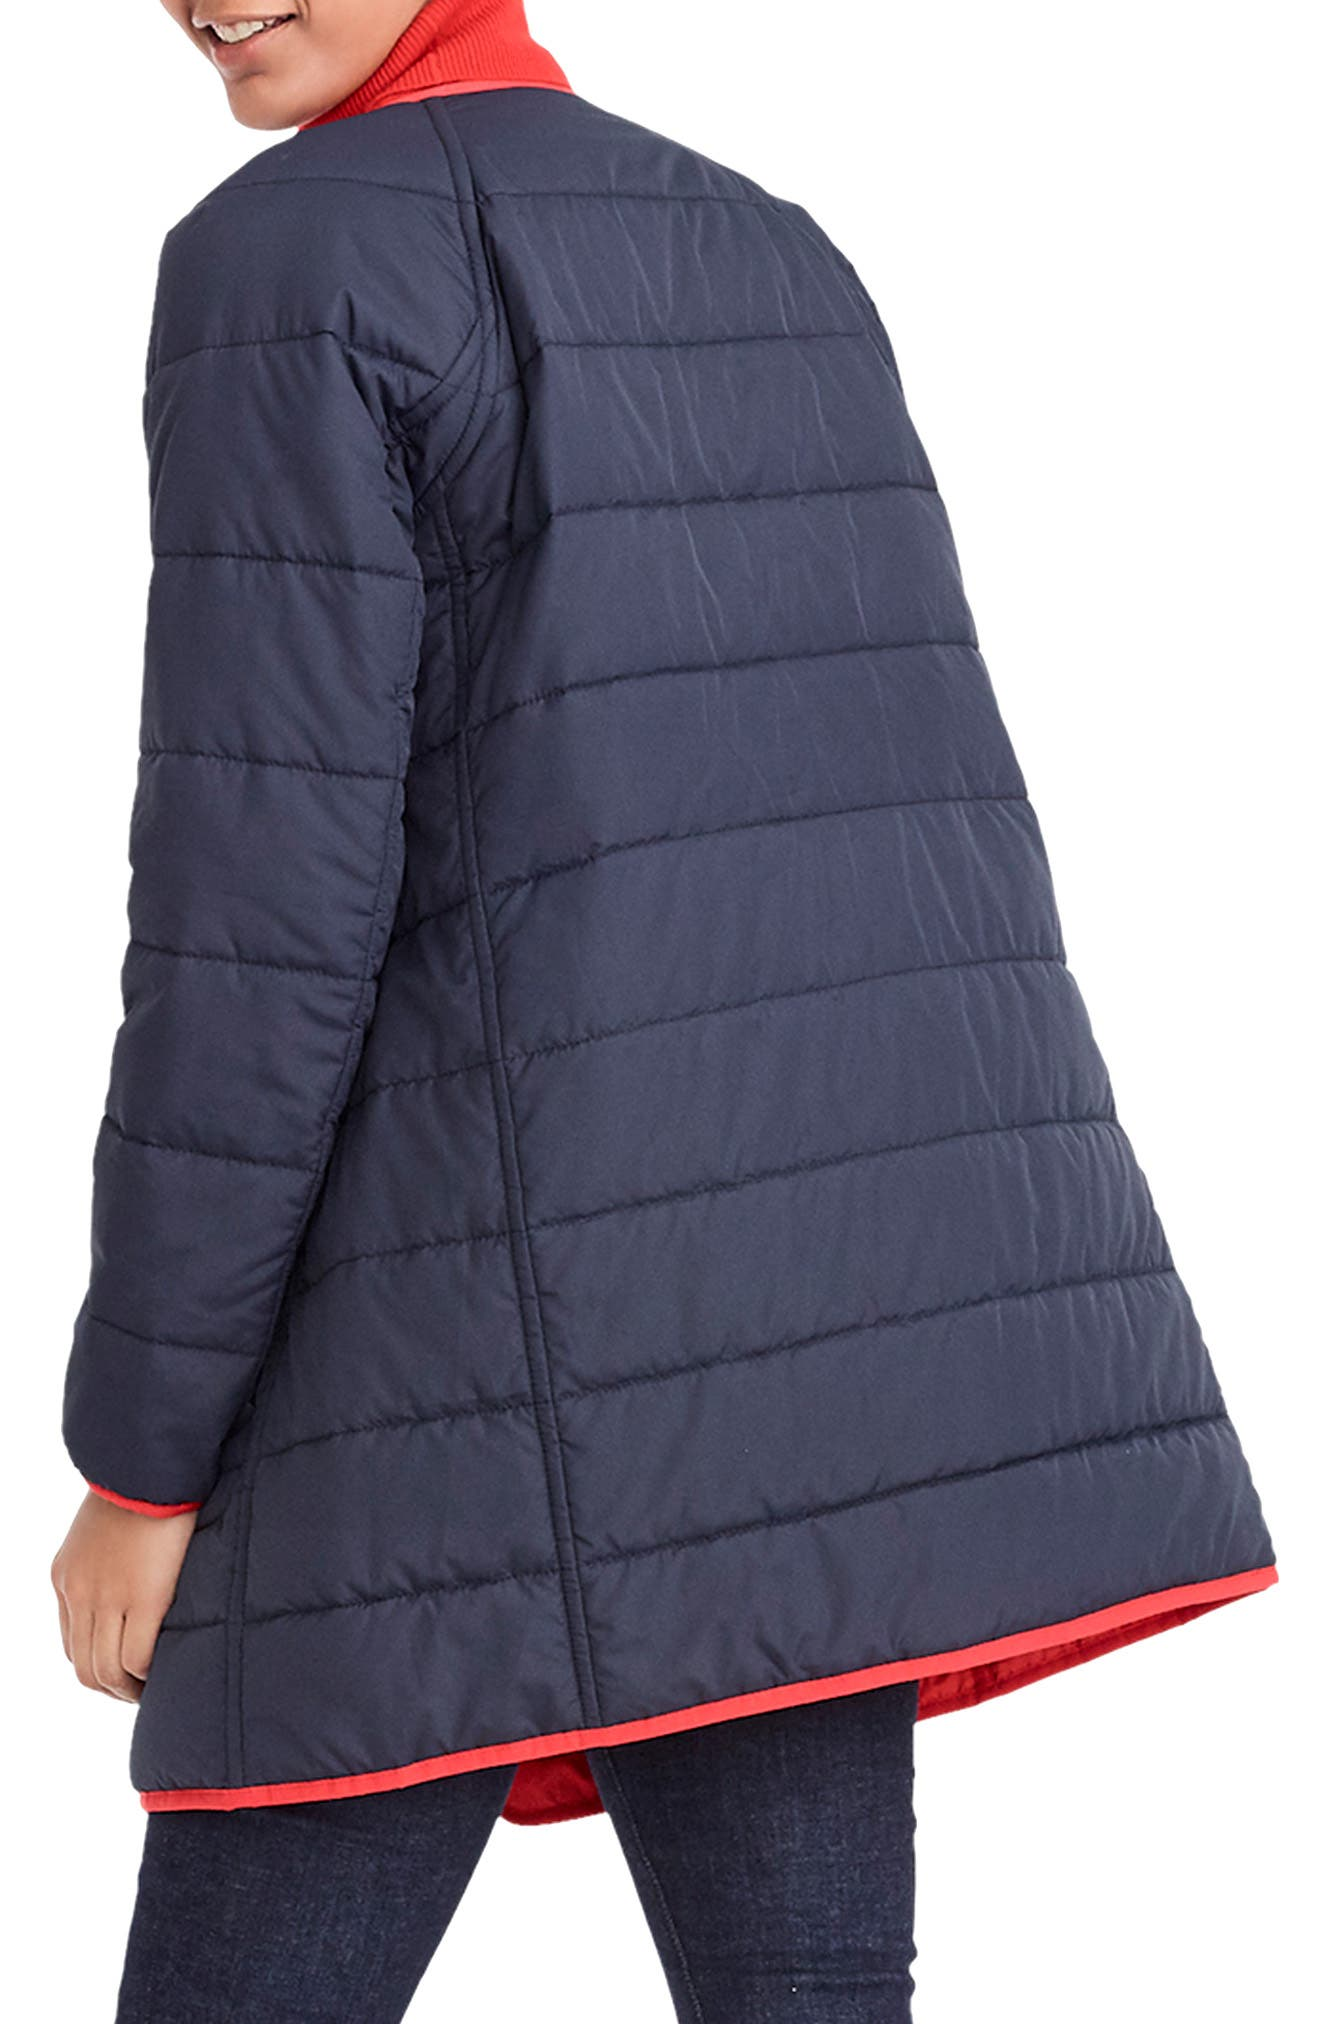 Reversible Puffer Jacket,                             Alternate thumbnail 3, color,                             400